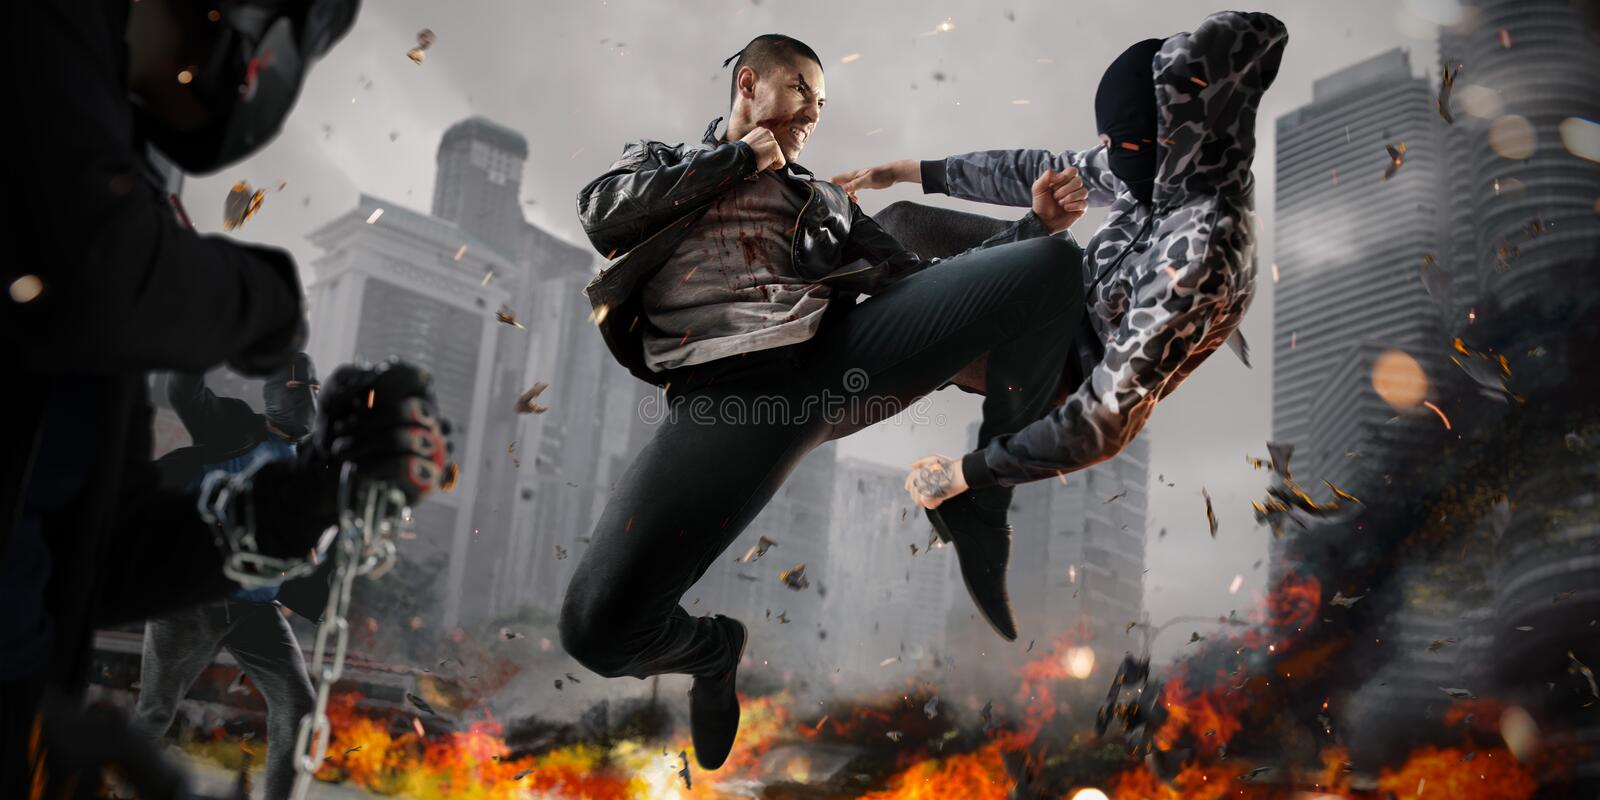 Street fighter super heroin action royalty free stock image